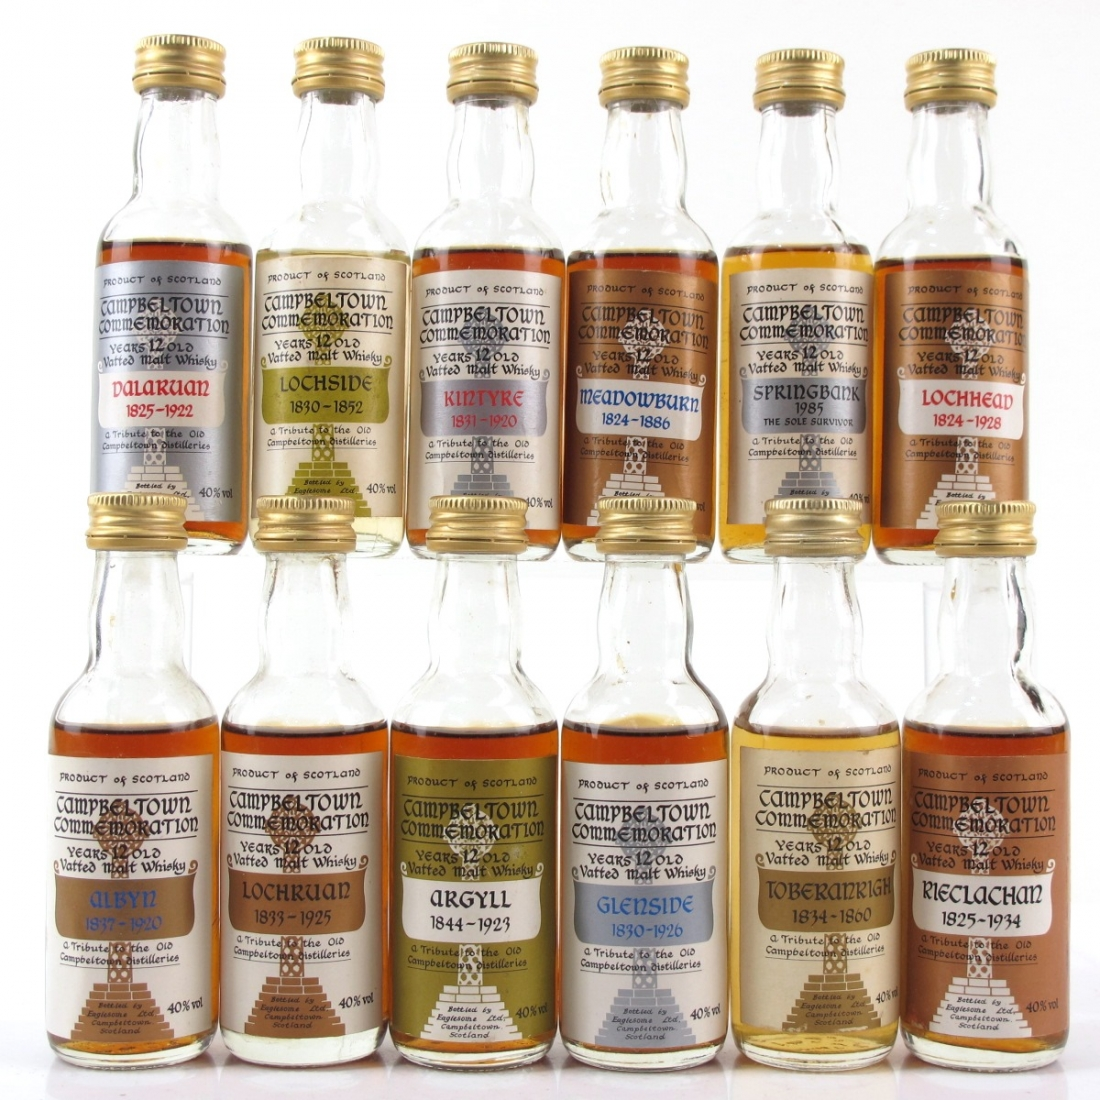 Campbeltown Commemoration Miniatures 12 x 5cl